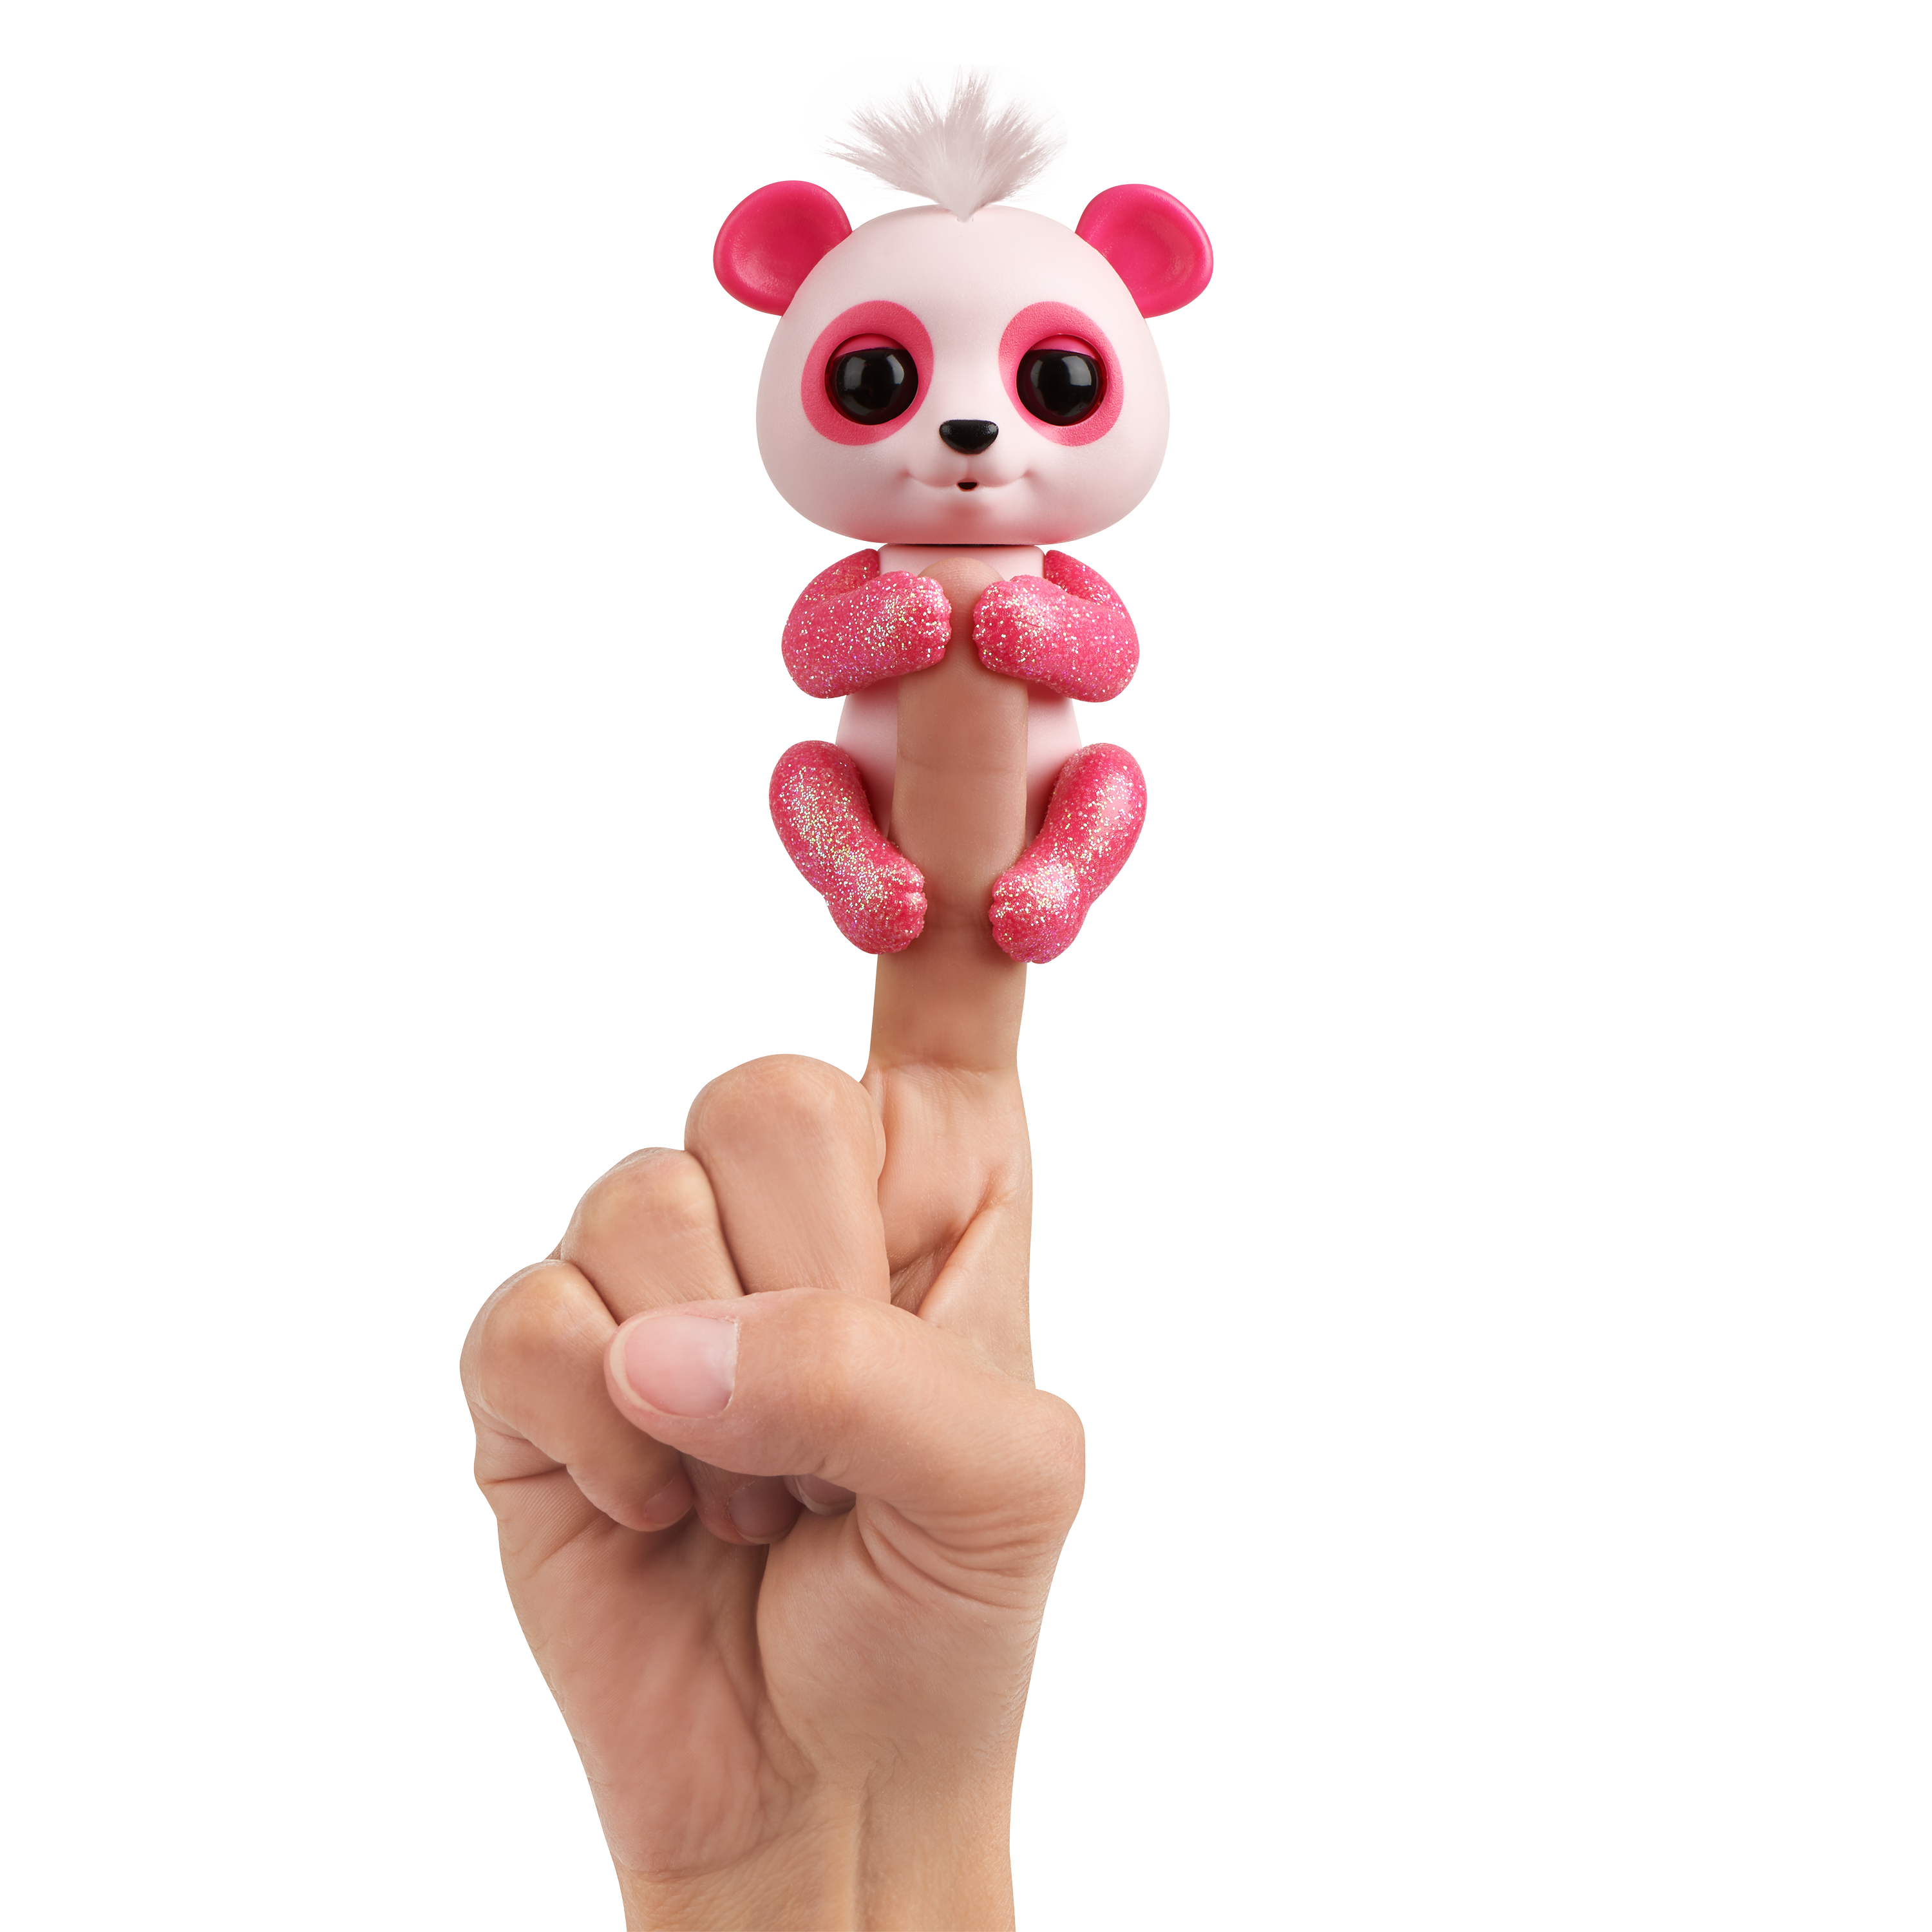 Fingerlings Glitter Panda - Polly (Pink) - Interactive Collectible Baby Pet - By WowWee